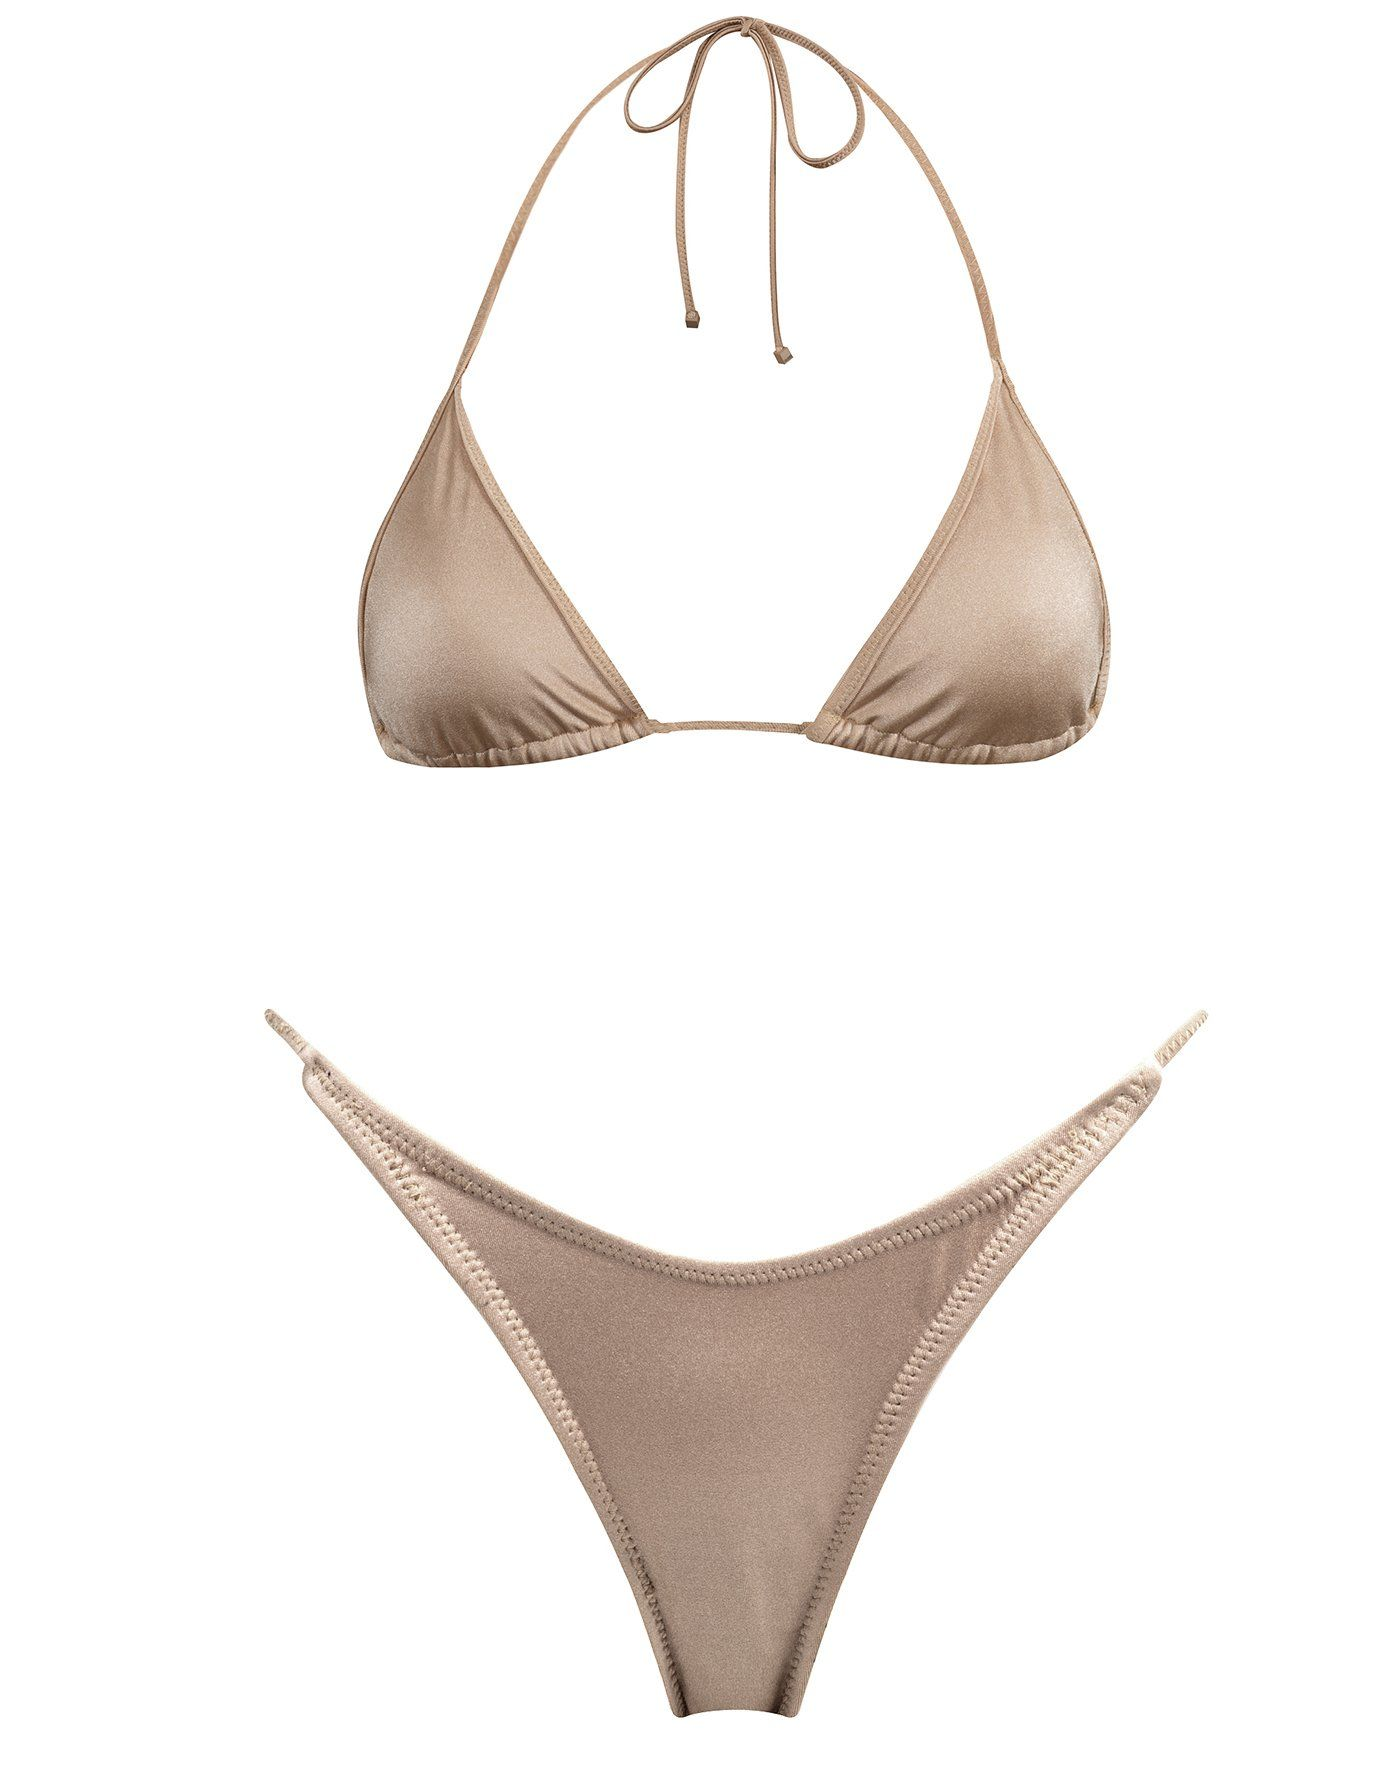 c20260ace49f Nude nylon spandex neck tie bikini. Fully adjustable triangle top with self  tie fastenings and matching high waist thin strap bottoms.